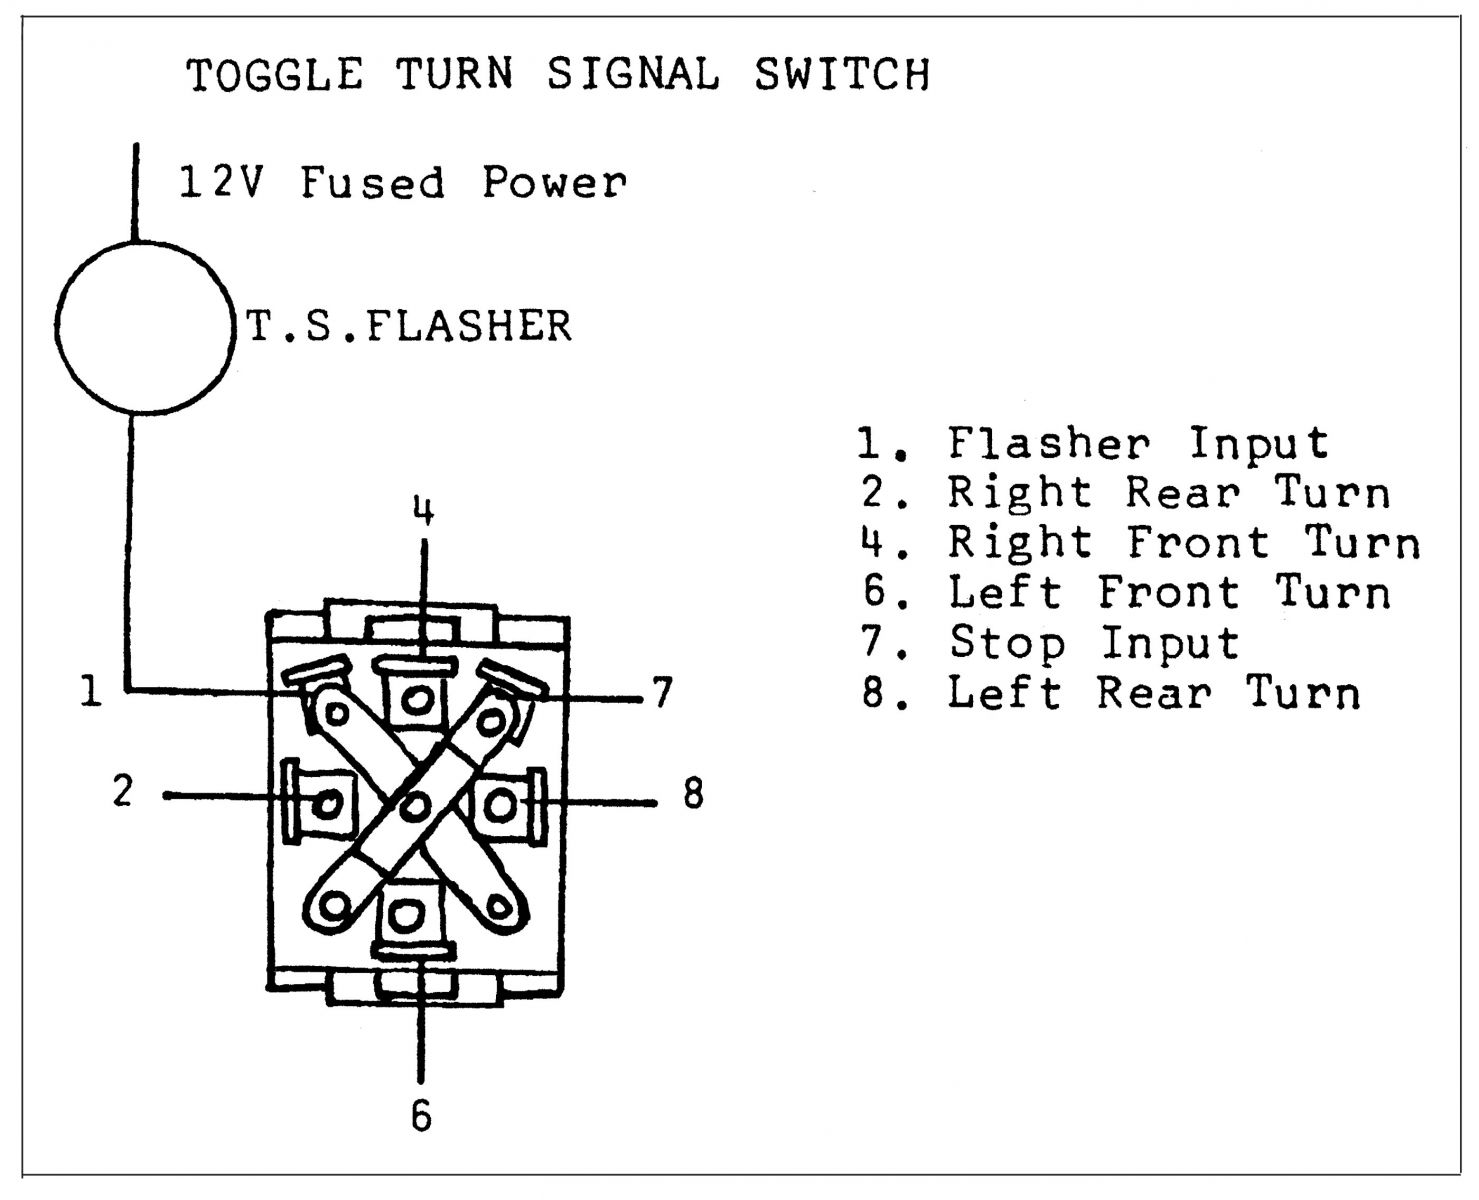 Turn signals 3 turn signals for early hot rods hotrod hotline turn signal kit wiring diagram at panicattacktreatment.co